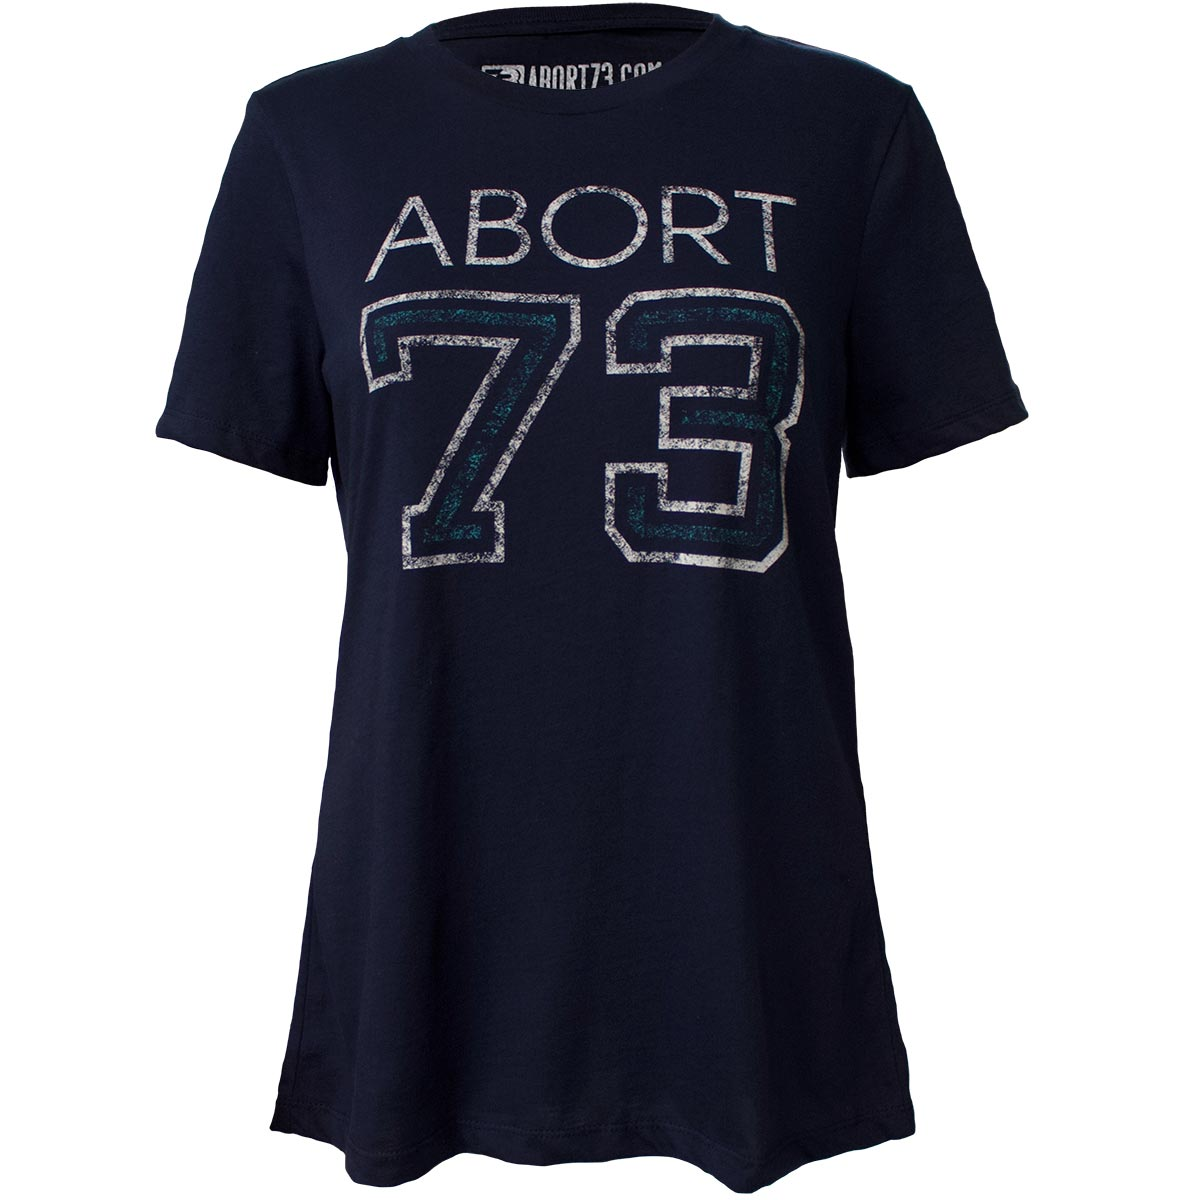 Abort73 (Jersey) (Abort73 Girls T-shirt)